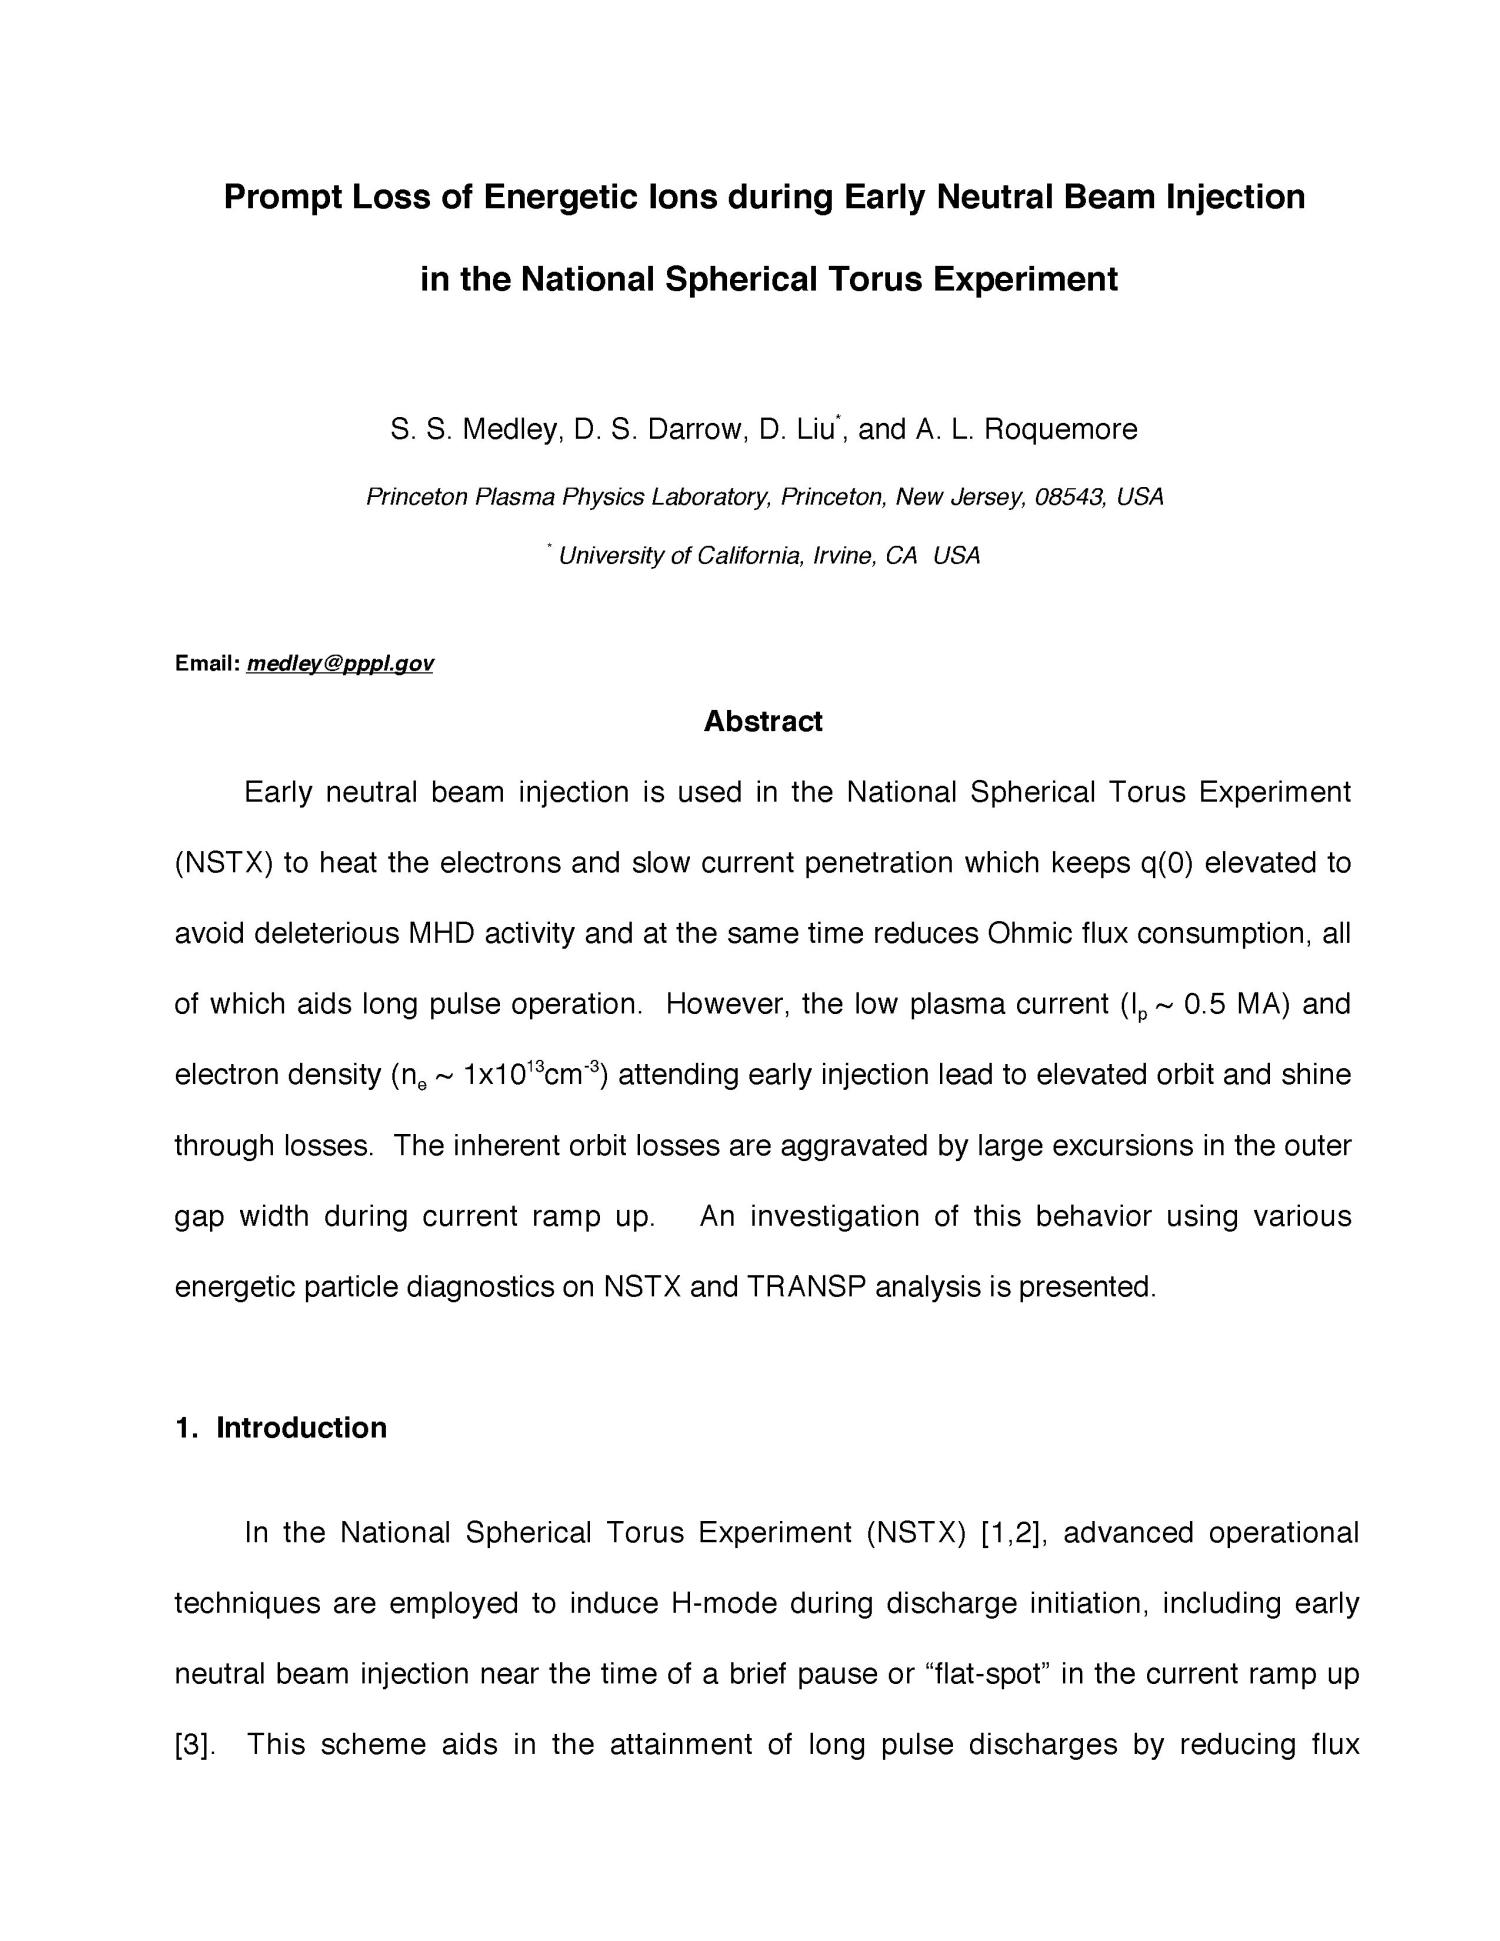 Prompt Loss of Energetic Ions during Early Neutral Beam Injection in the National Spherical Torus Experiment                                                                                                      [Sequence #]: 3 of 35